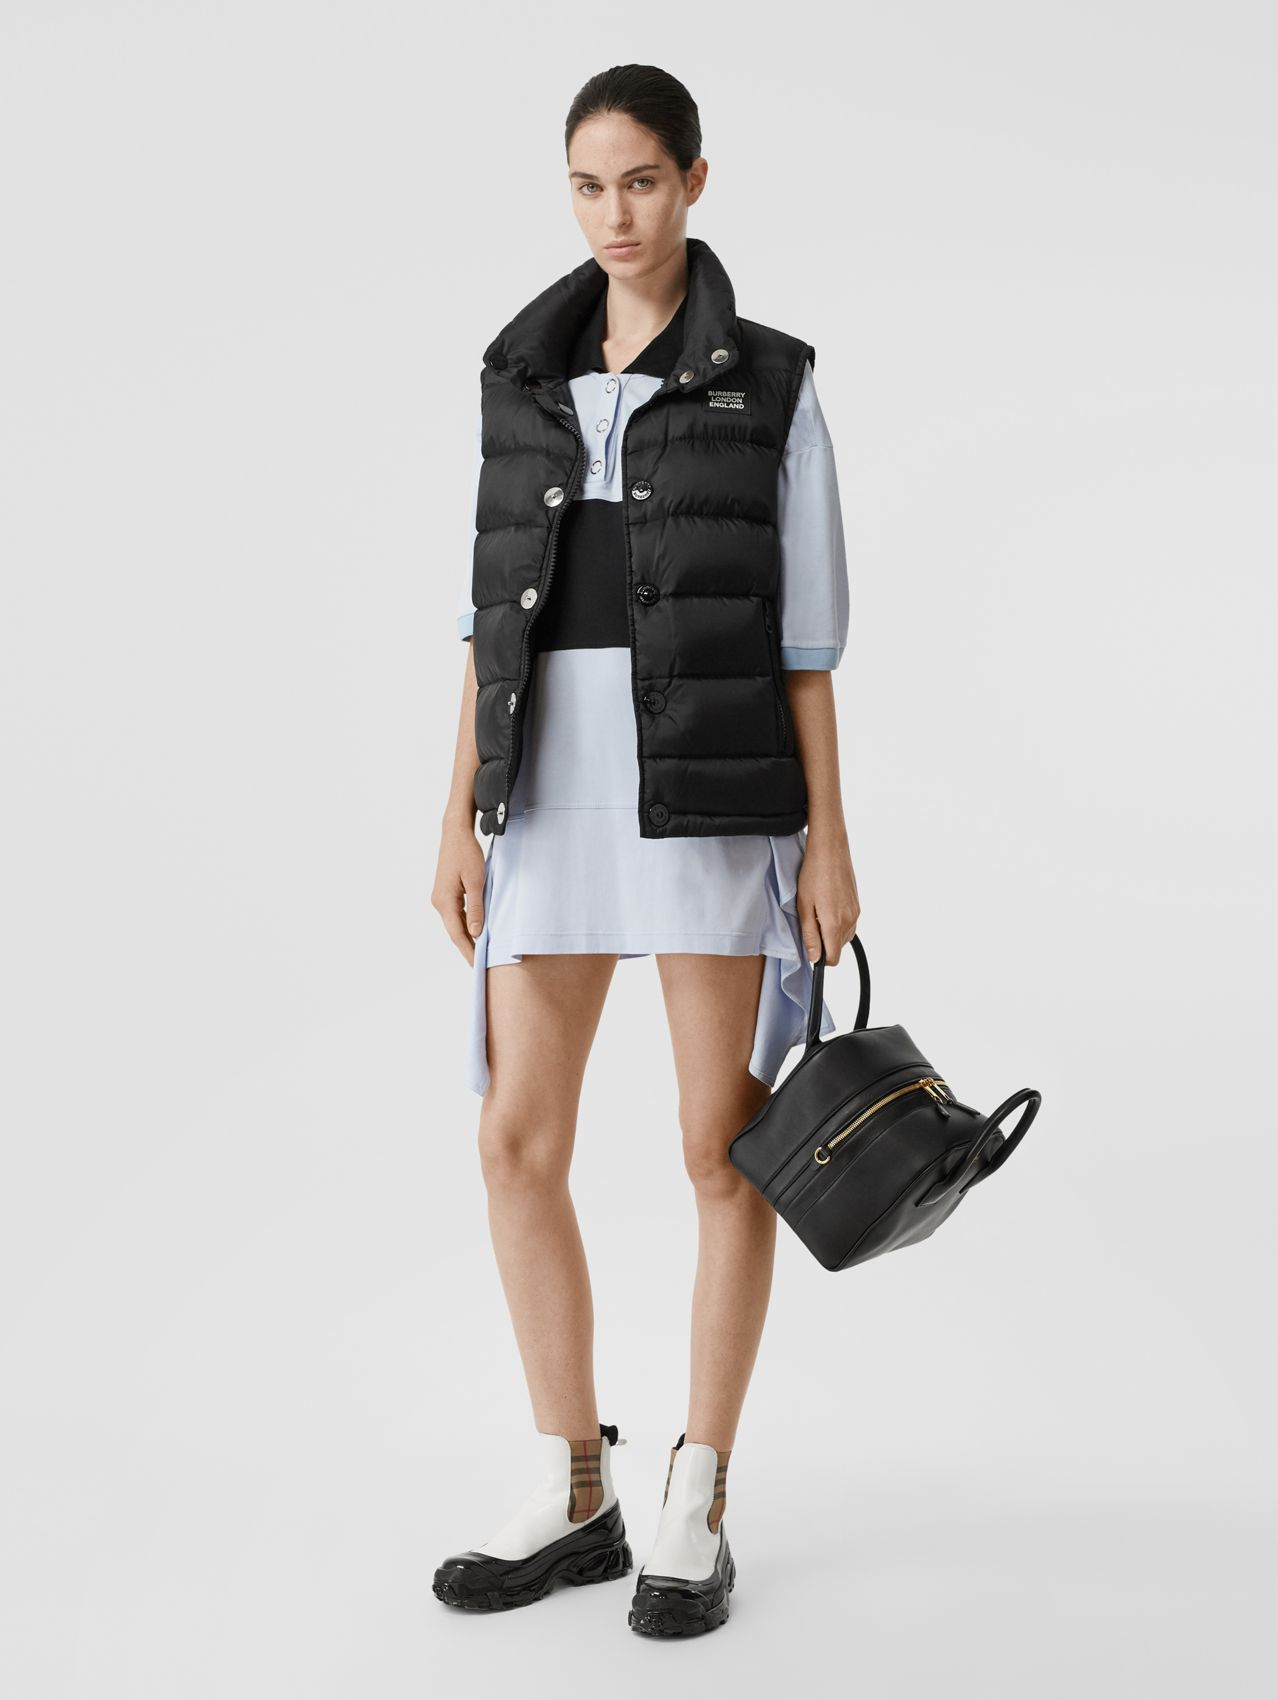 Monogram Stripe Print Puffer Gilet in Black